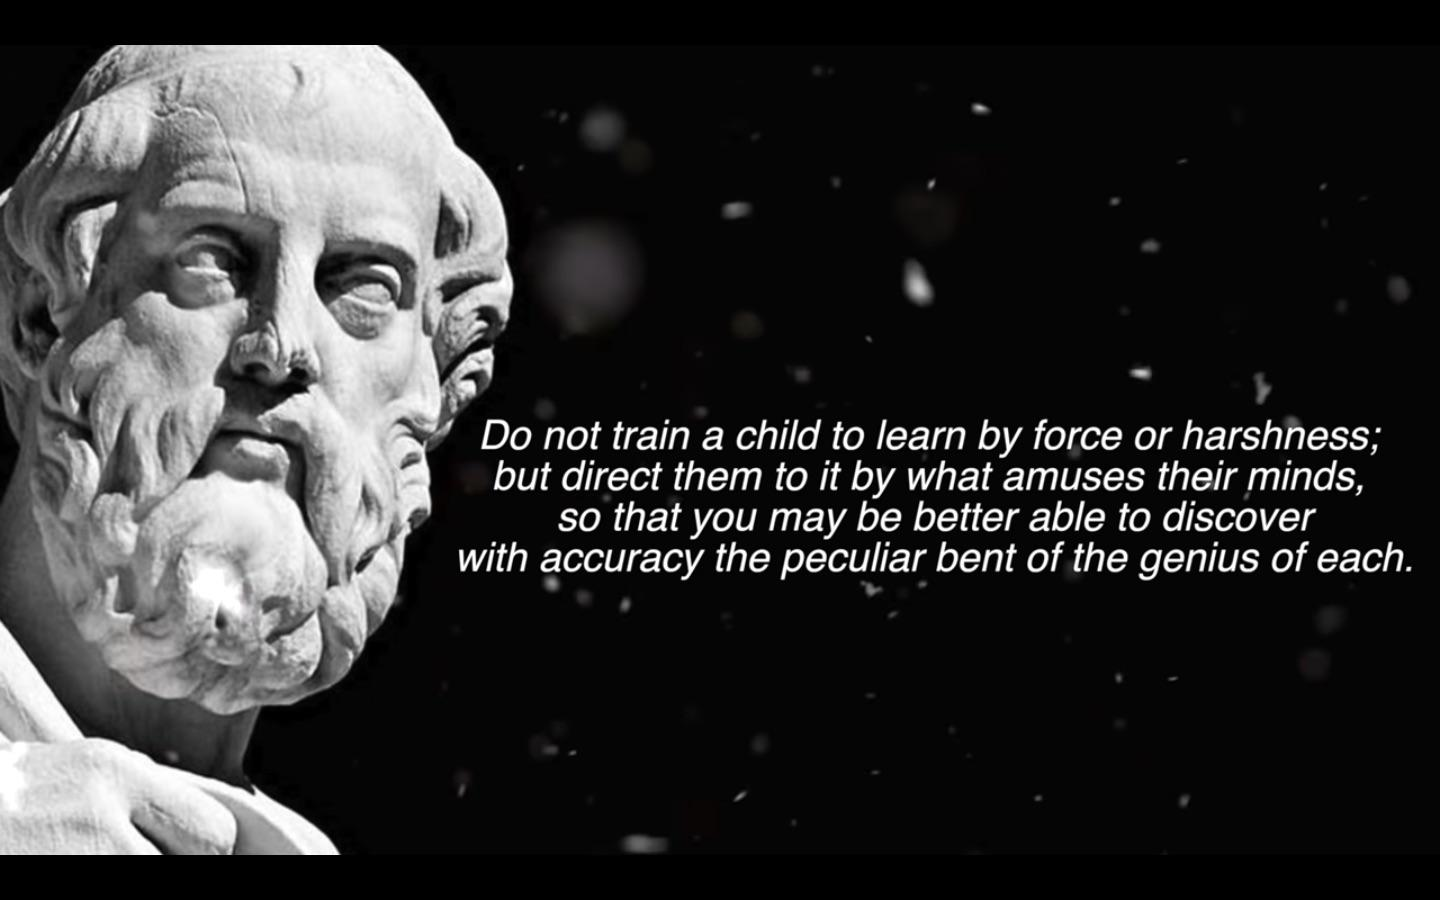 "Plato: ""Do not train a child to learn by force or harshness; but direct them to it by what amuses their minds, so that you may be better able to discover with accuracy the peculiar bent of the genius of each."" [1440×900]"